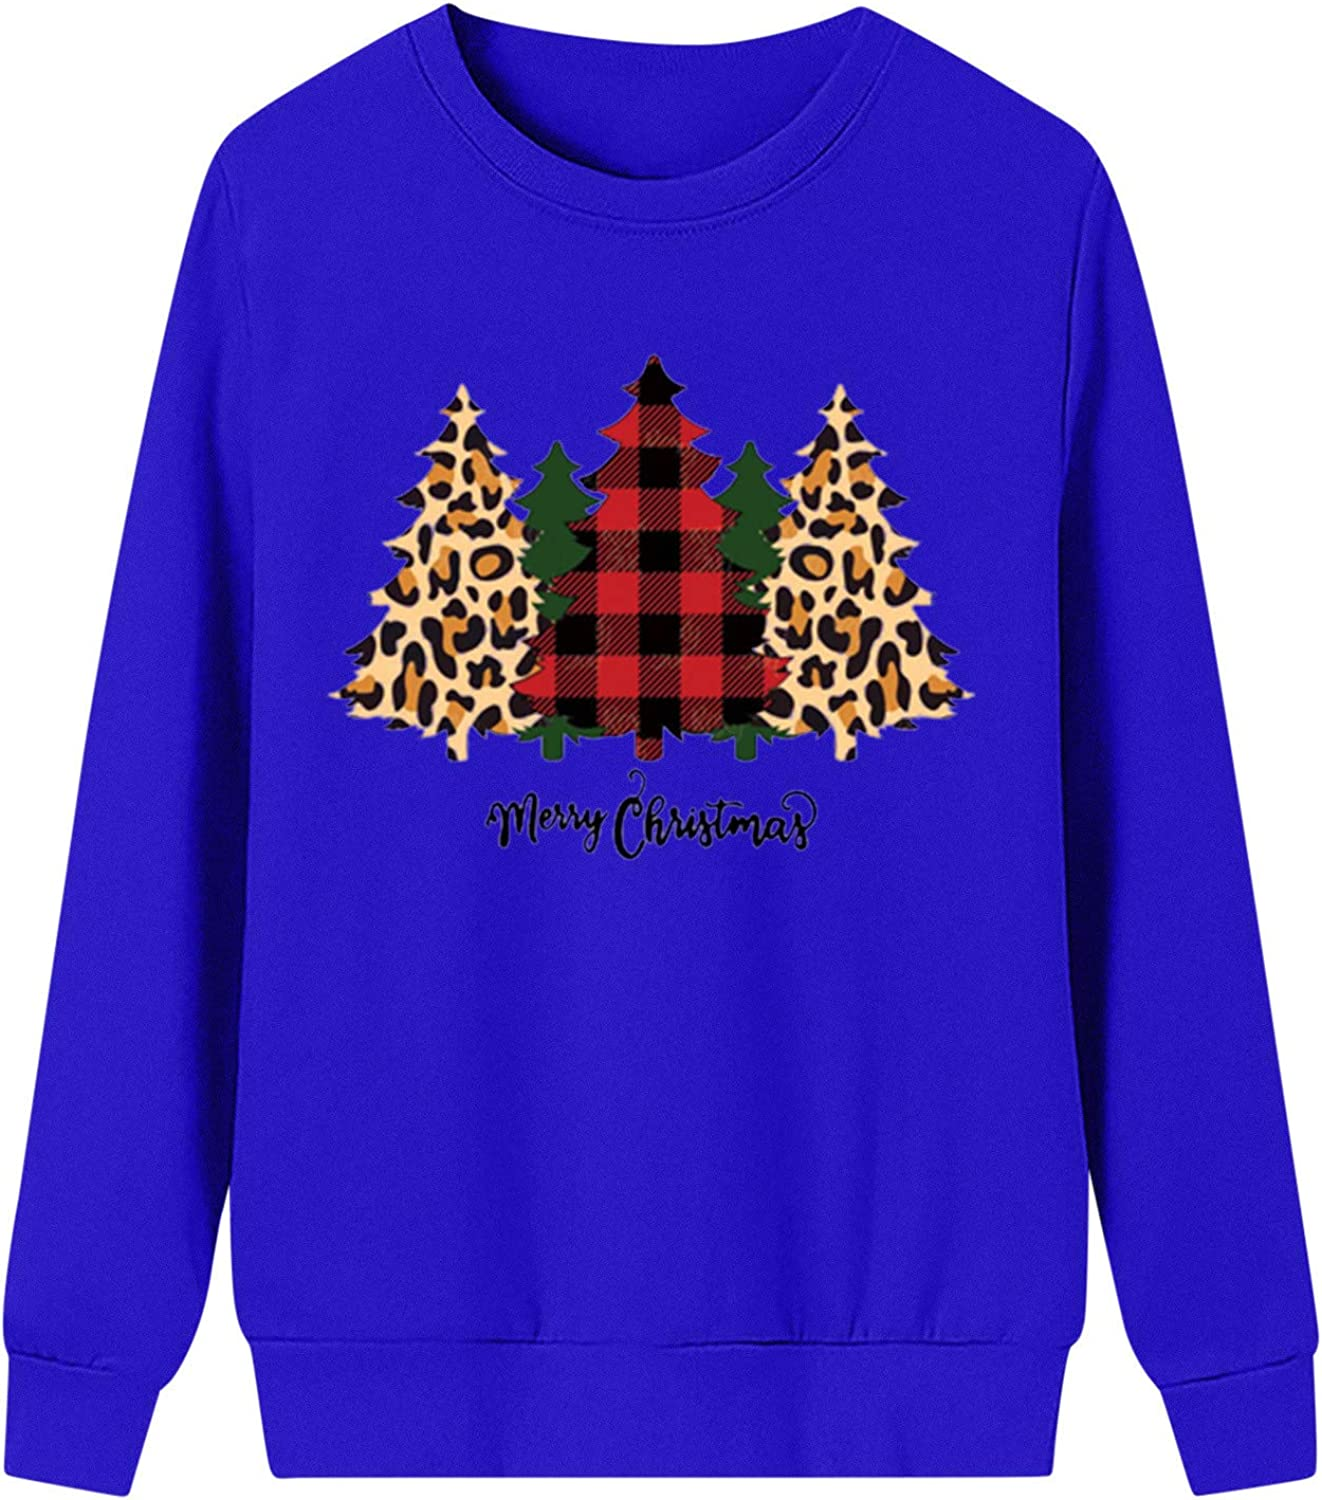 Christmas Oversized Sweatshirts for Women Cute Tree Print Long Sleeve Plus Size Pullover Blouse Casual Tunic Tops